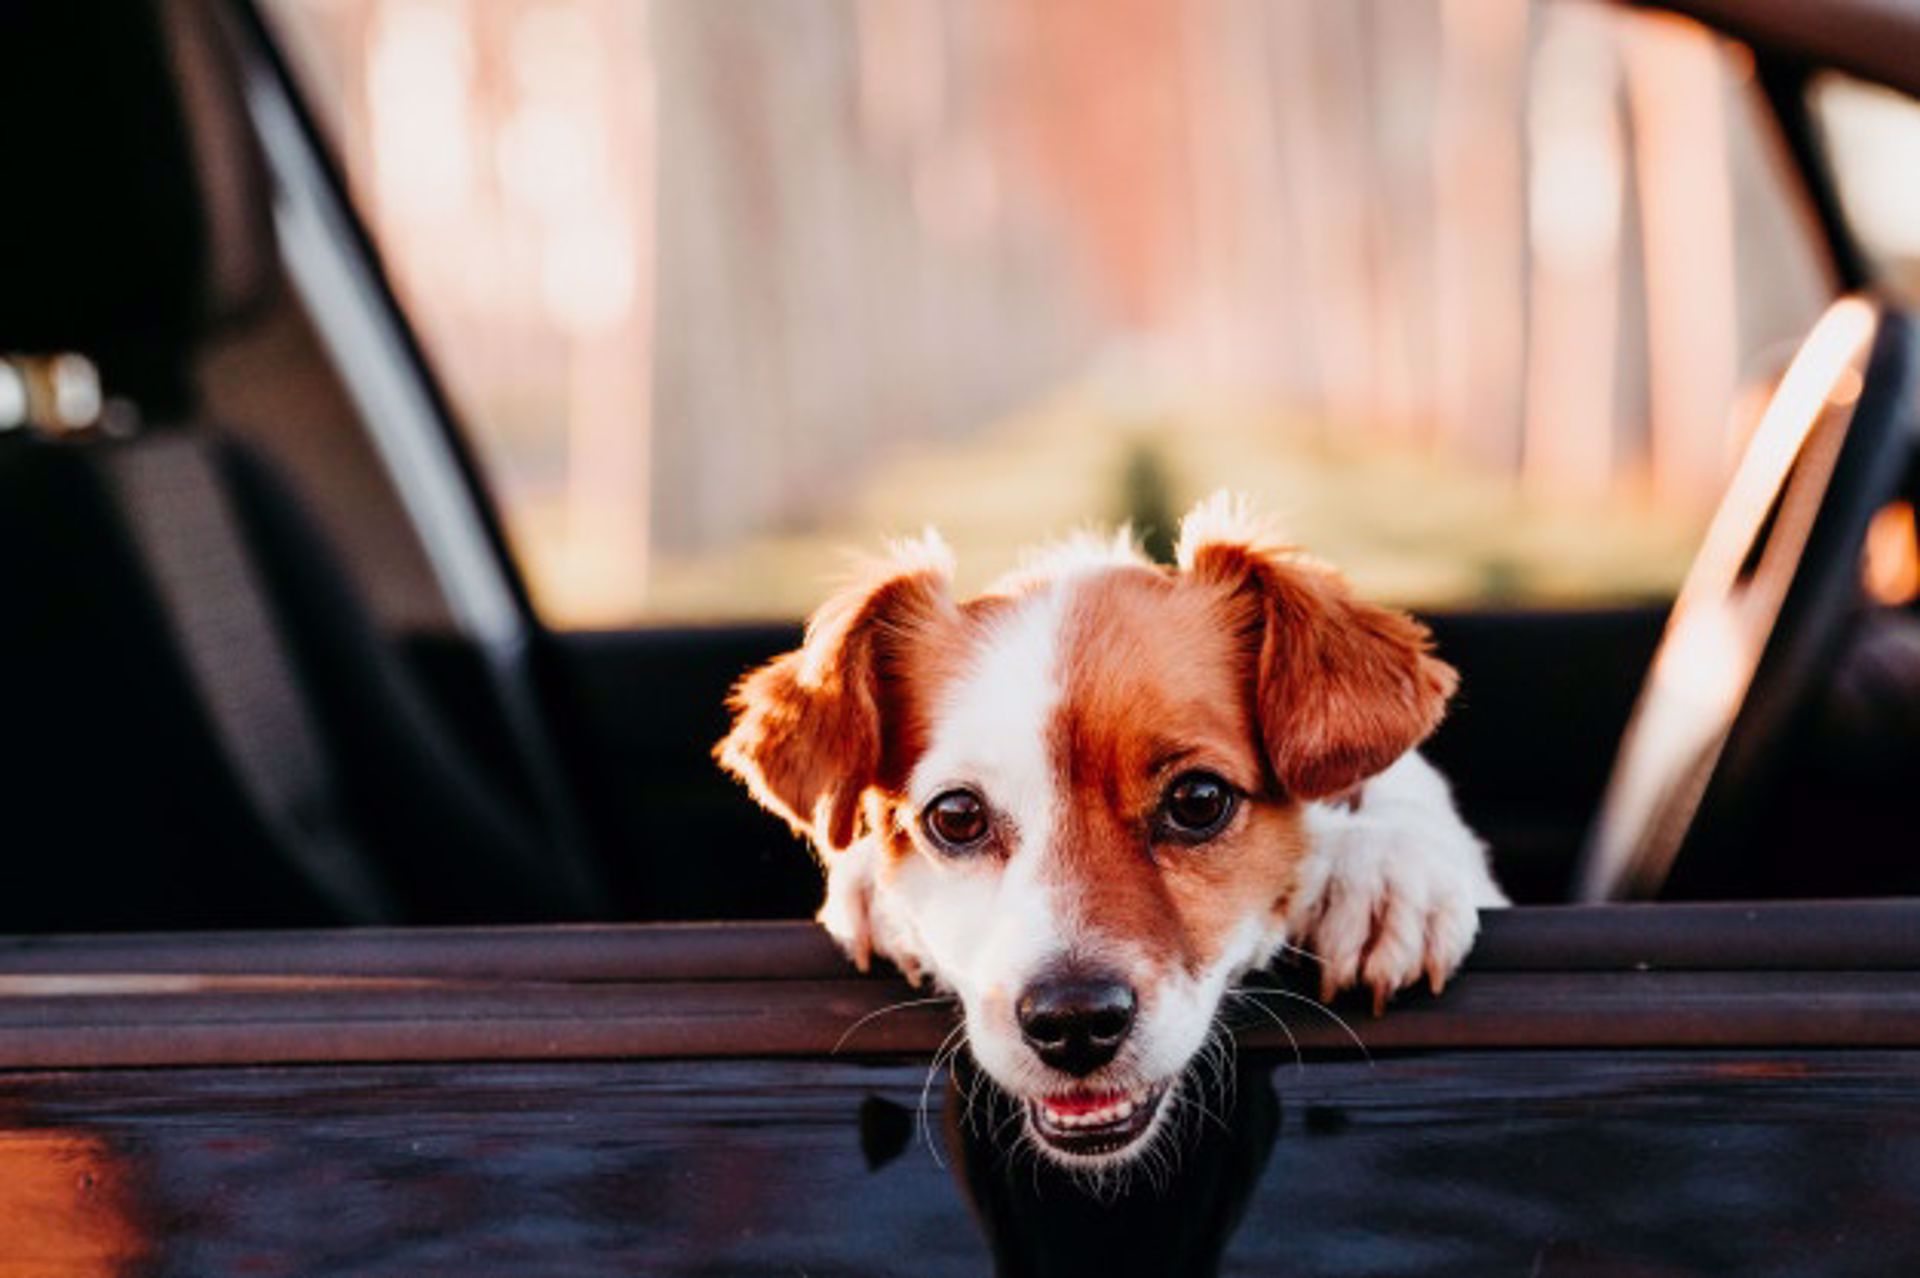 Sharing the Car Love With Your Furry Friend!